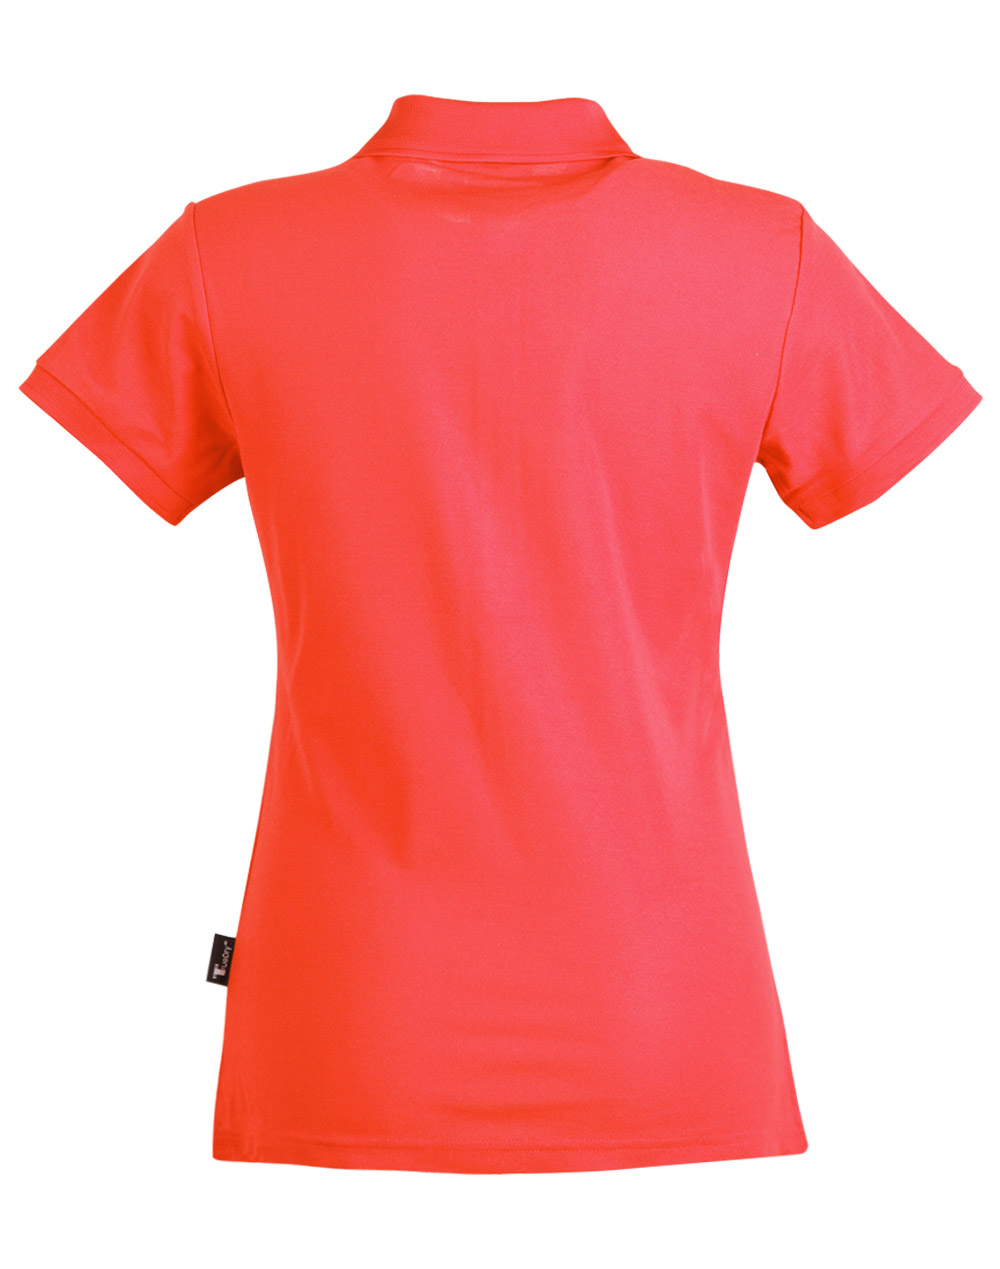 https://s3-ap-southeast-1.amazonaws.com/ws-imgs/POLOSHIRTS/PS64_Red_Back.jpg